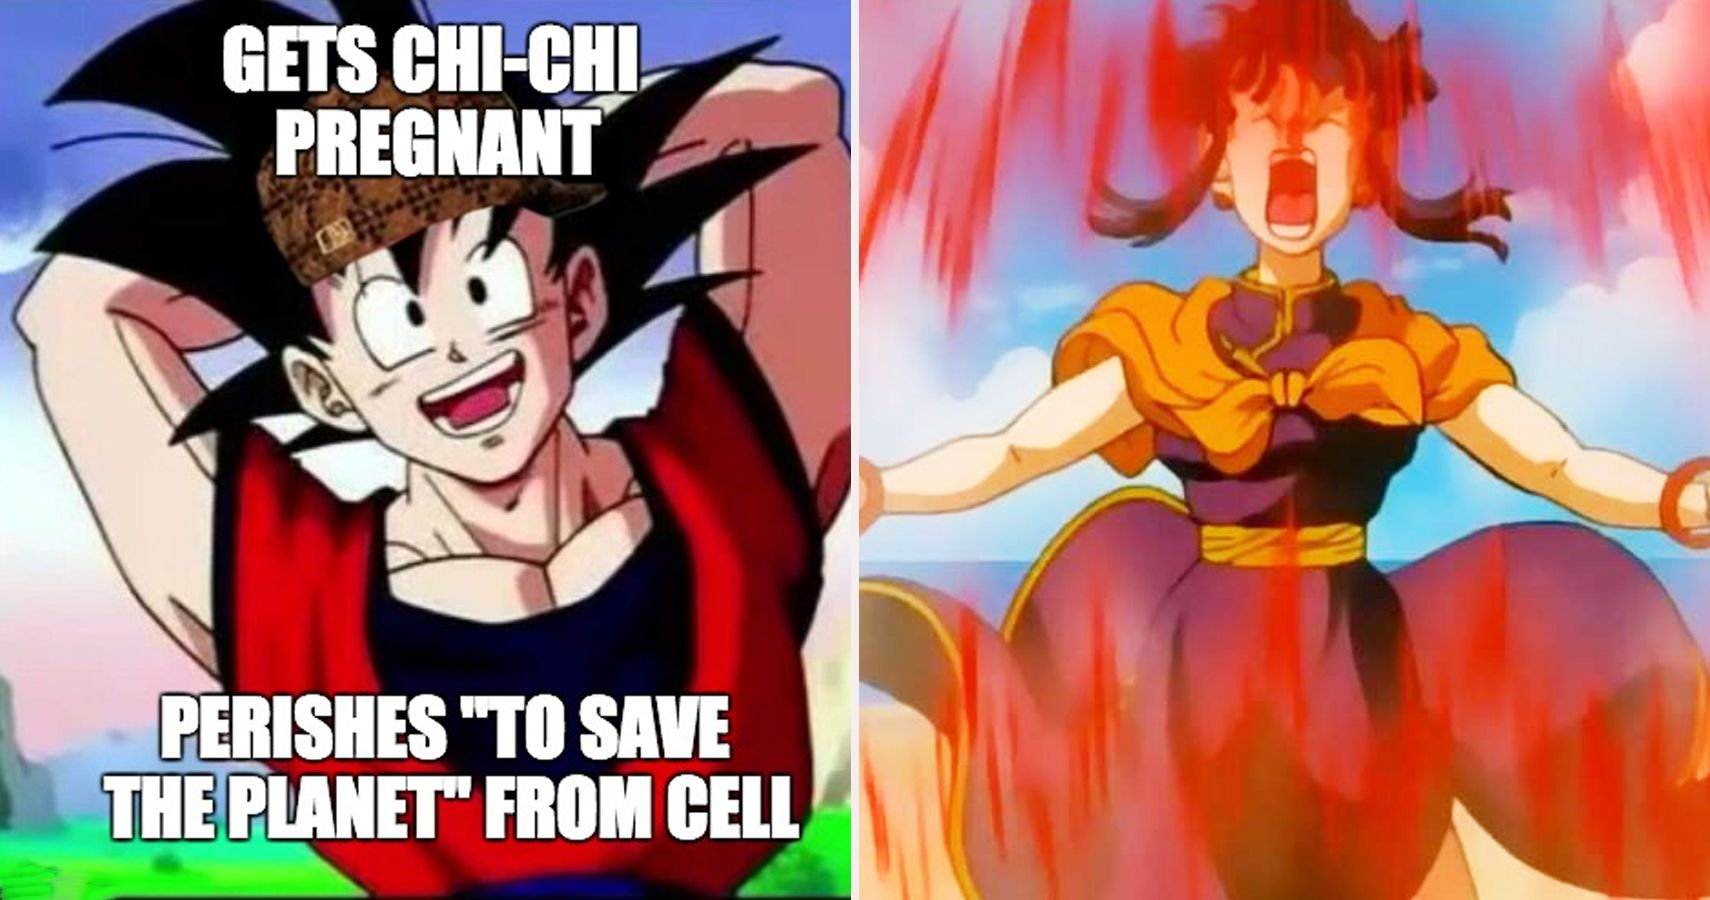 Goku and chichi divorce